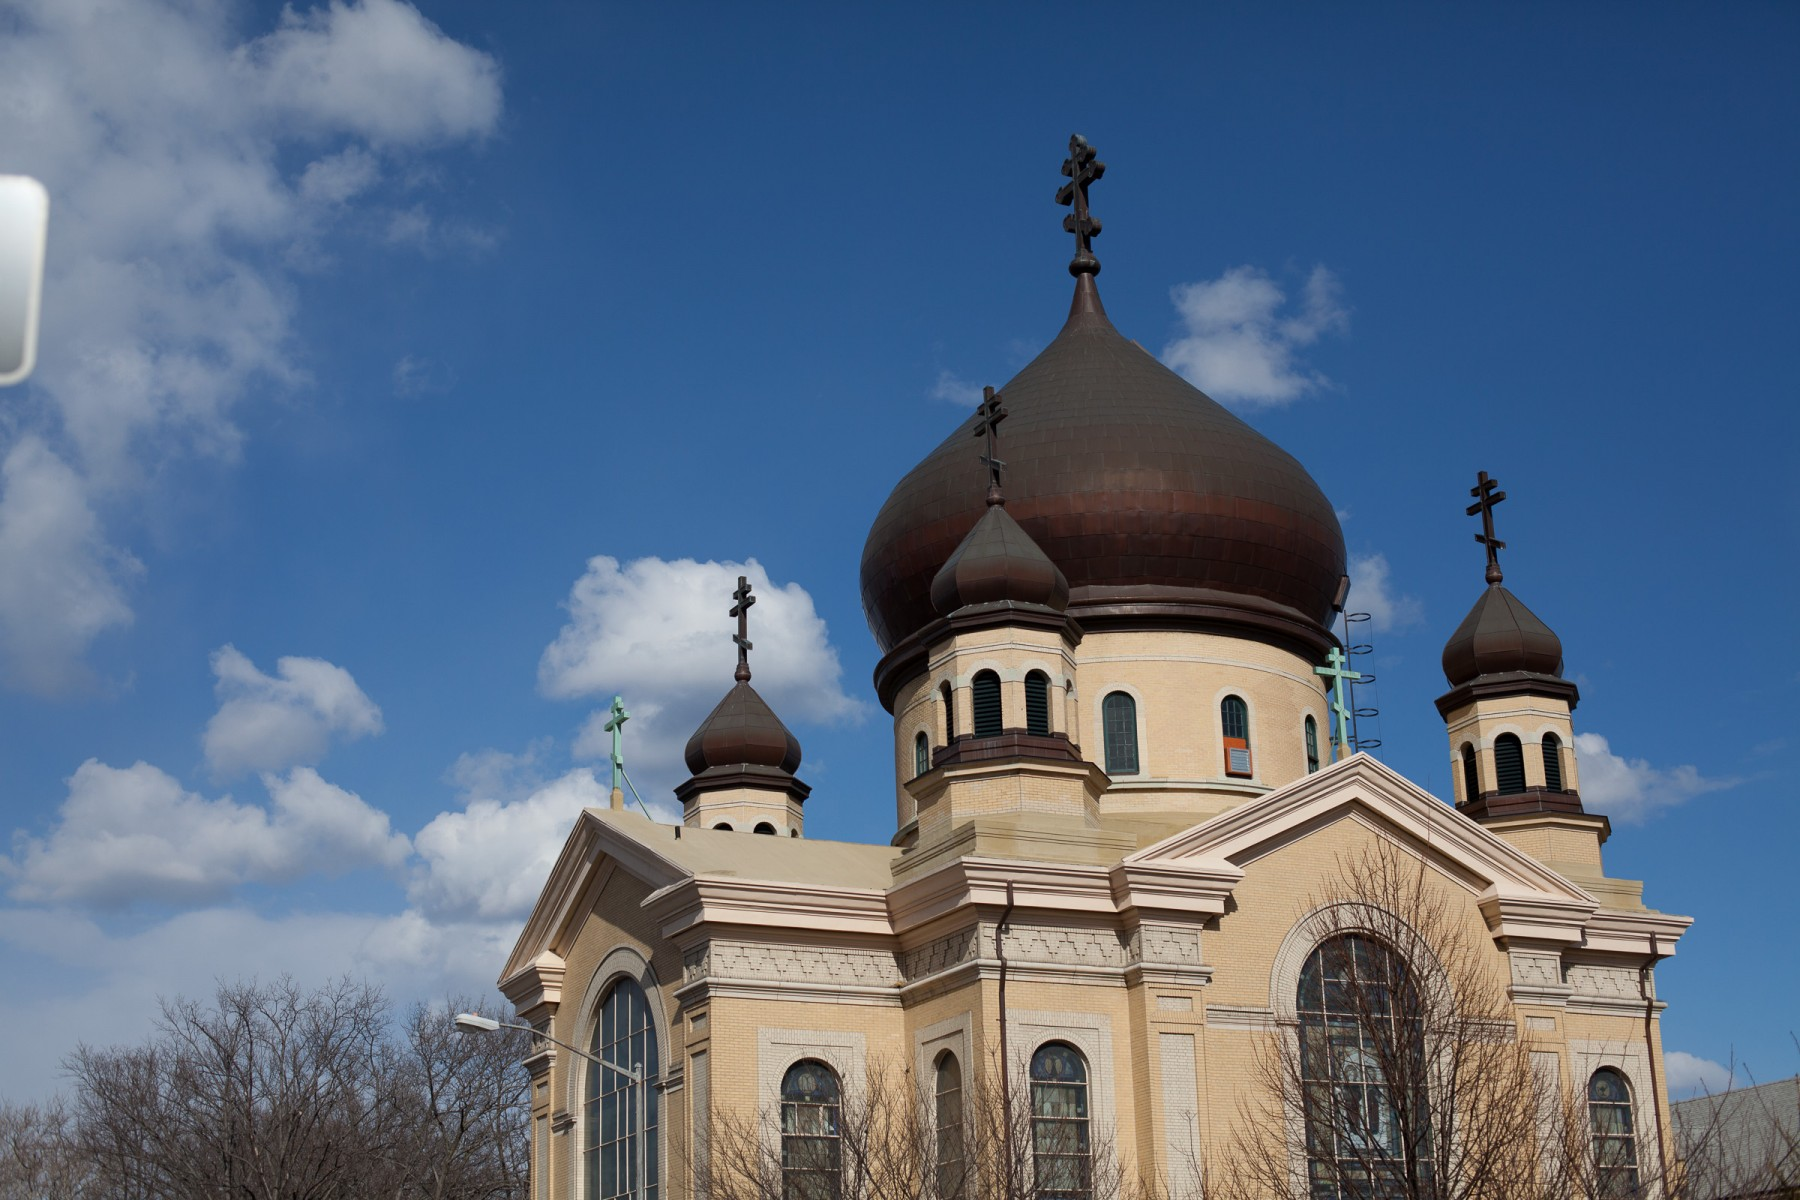 Russian Orthodox Cathedral of the Transfiguration in Willamsburg, Brooklyn.